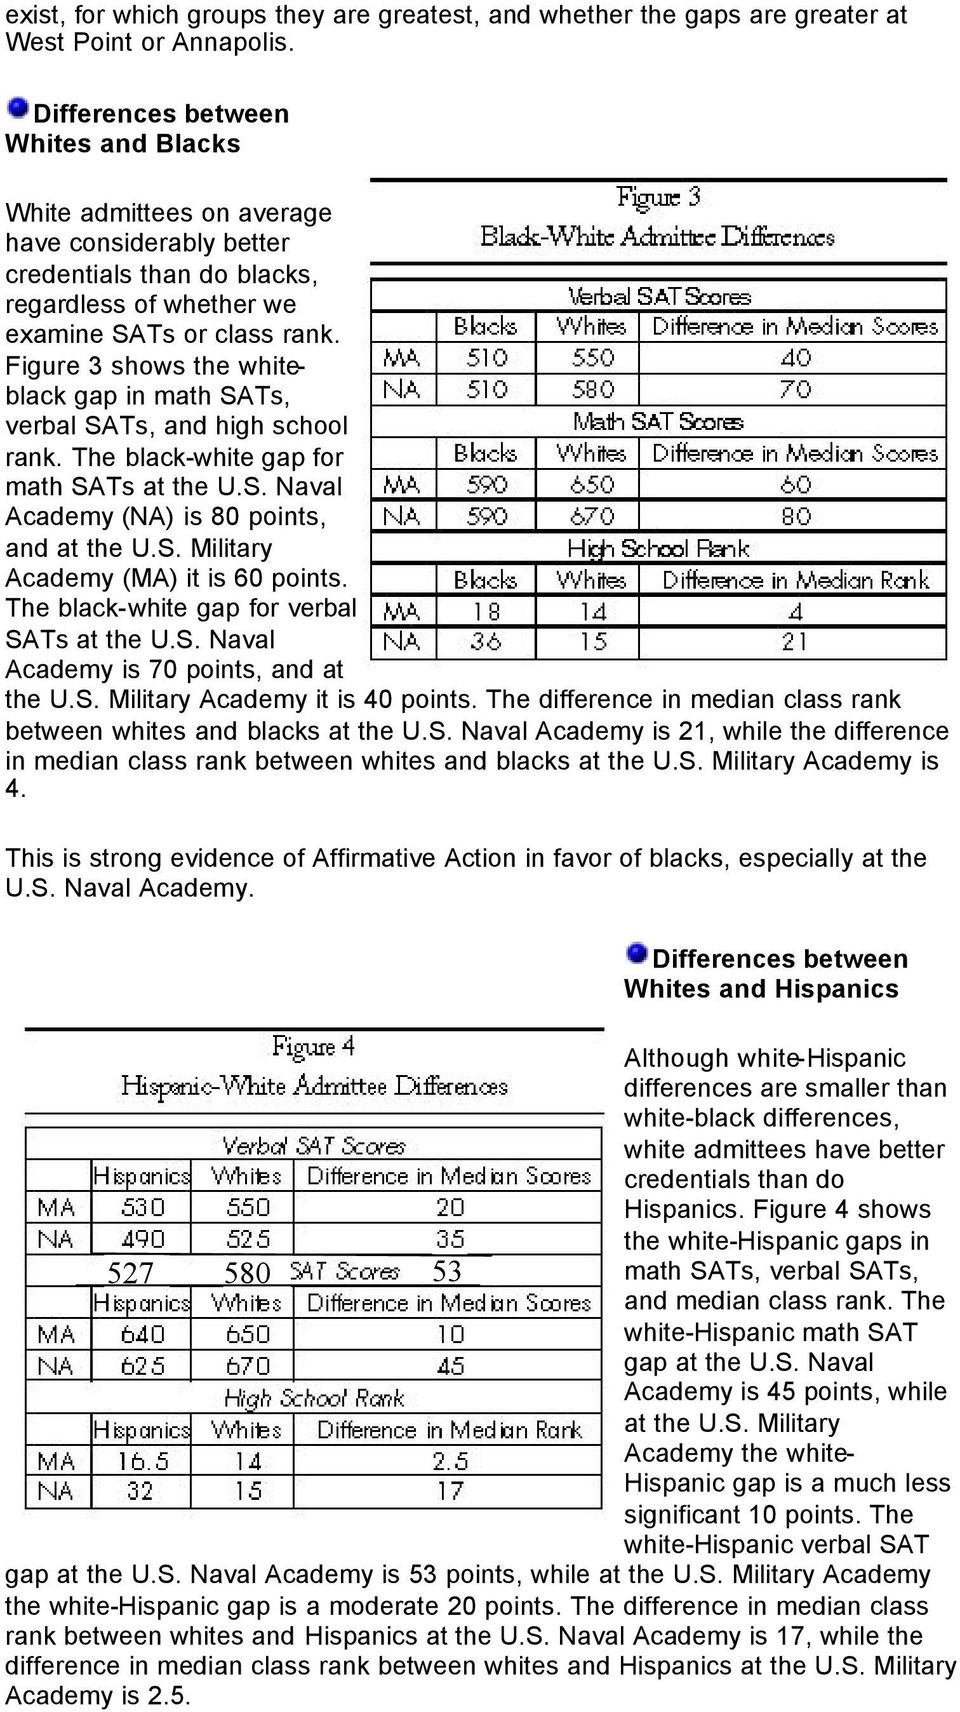 Figure 3 shows the whiteblack gap in math SATs, verbal SATs, and high school rank. The black-white gap for math SATs at the U.S. Naval Academy (NA) is 80 points, and at the U.S. Military Academy (MA) it is 60 points.